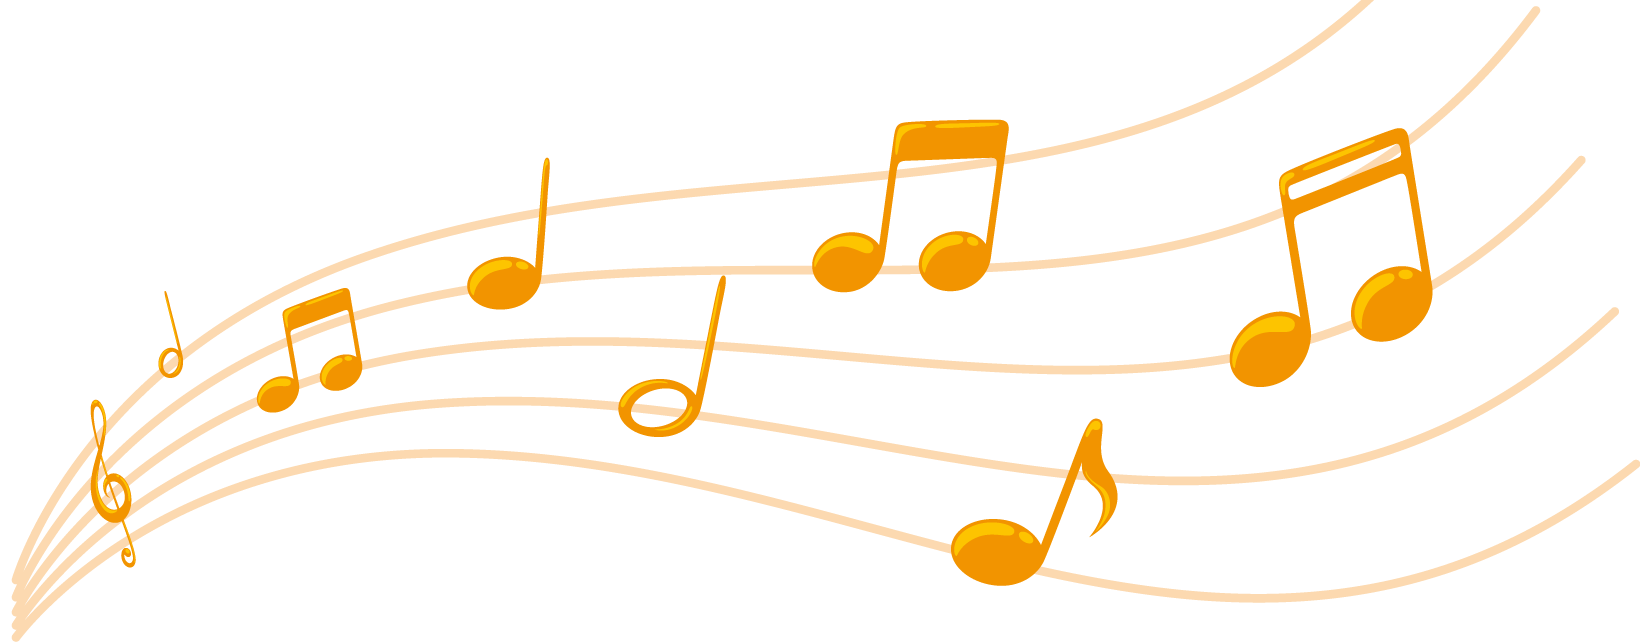 Gold transparentpng. Colorful musical notes png royalty free library